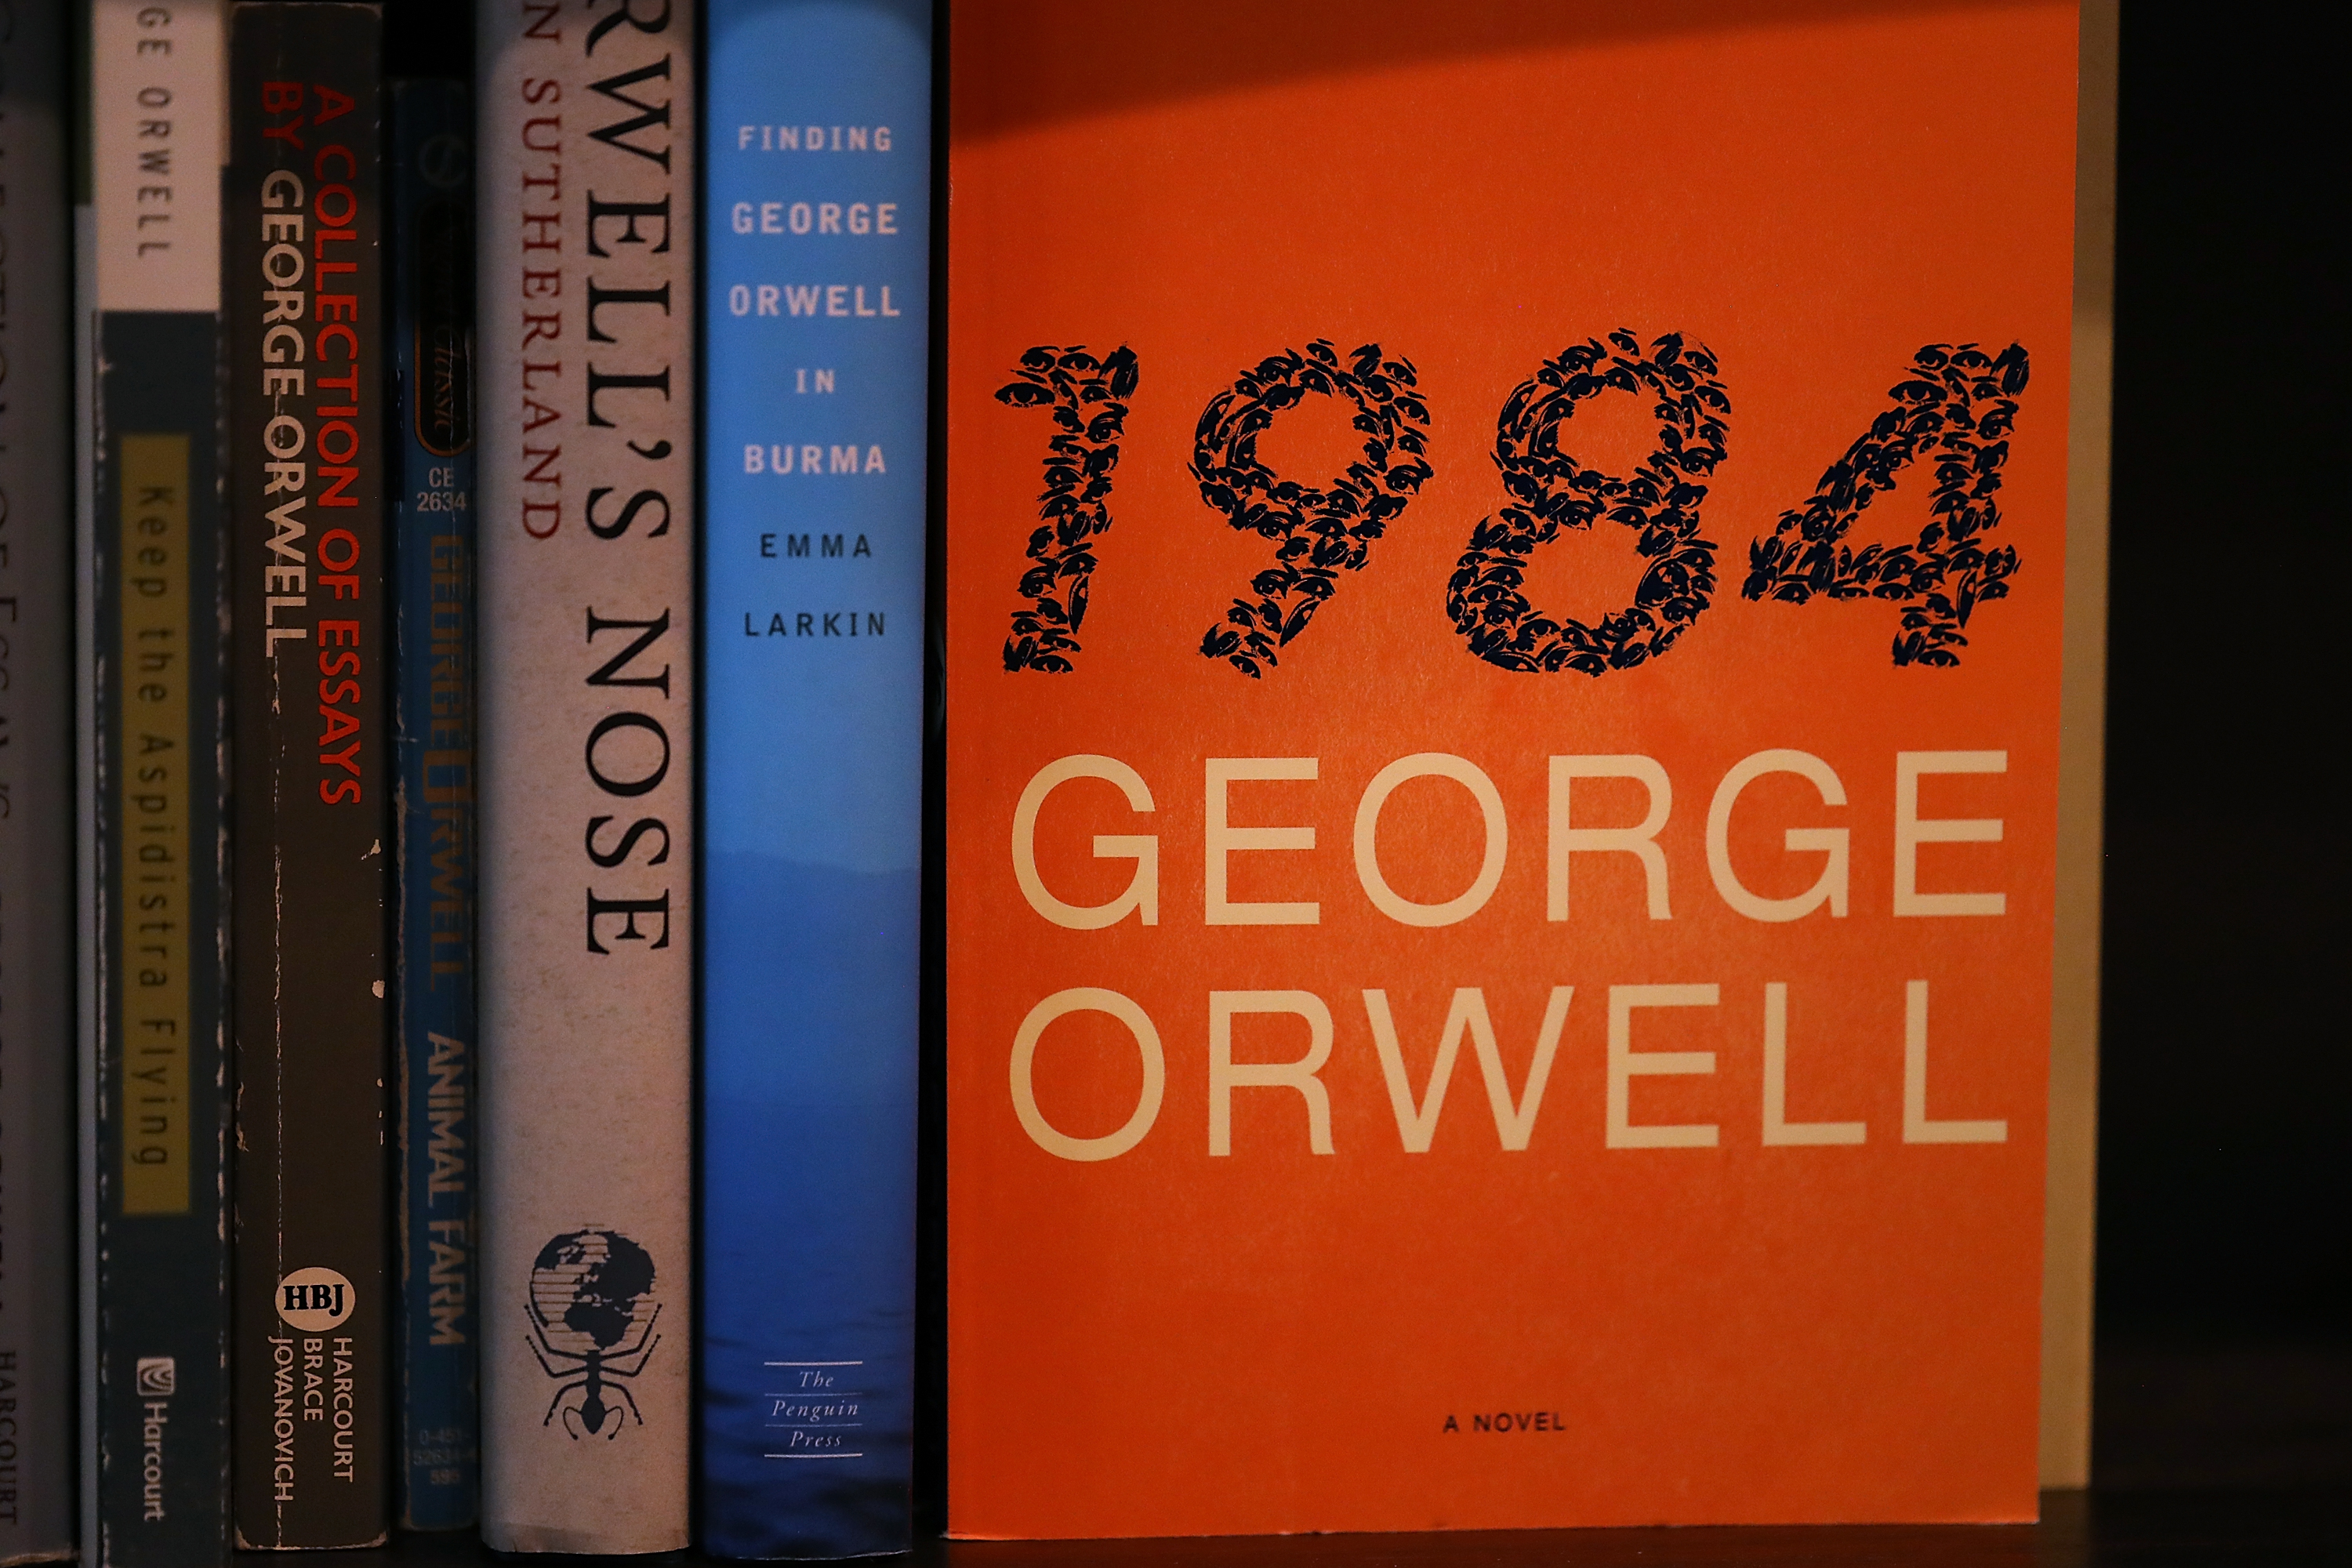 george orwell interest in dystopian novel surges in wake george orwell 1984 interest in dystopian novel surges in wake of trump administration s newspeak